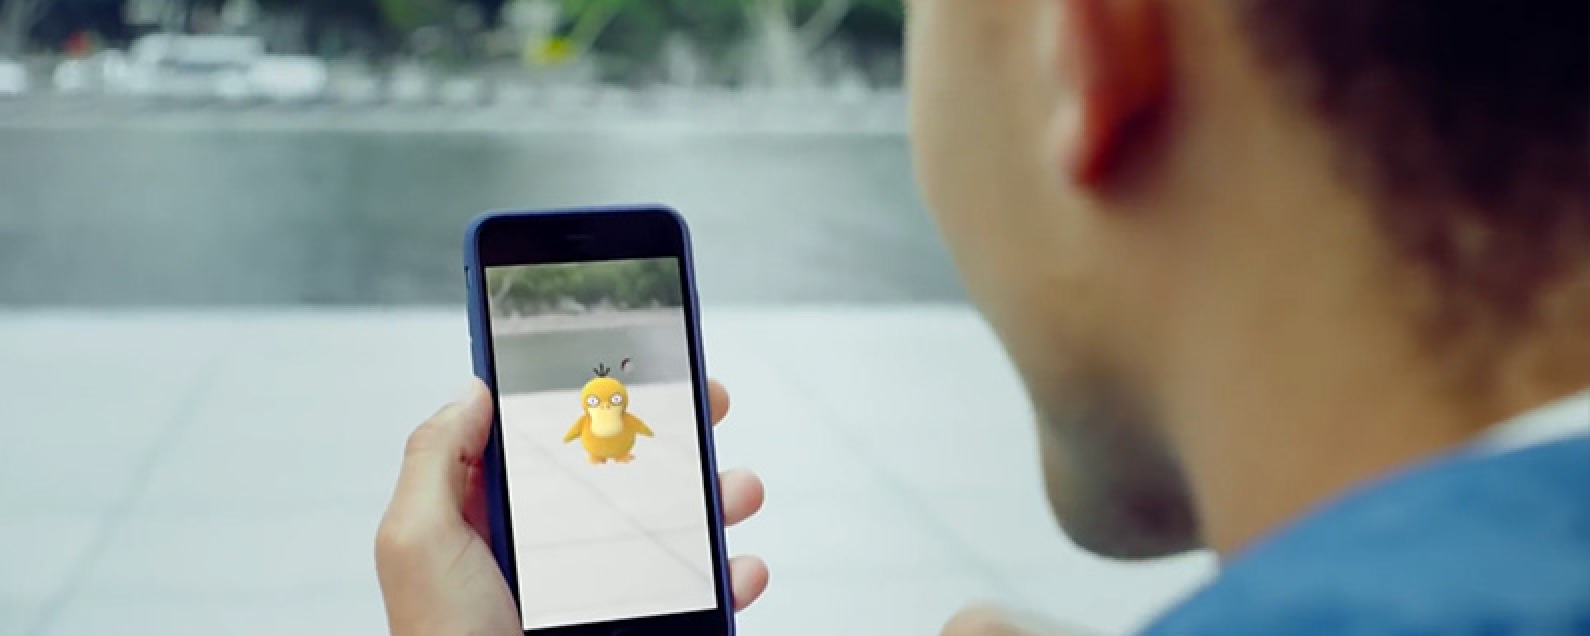 Augmented Reality Apps Are the Future of the iPhone